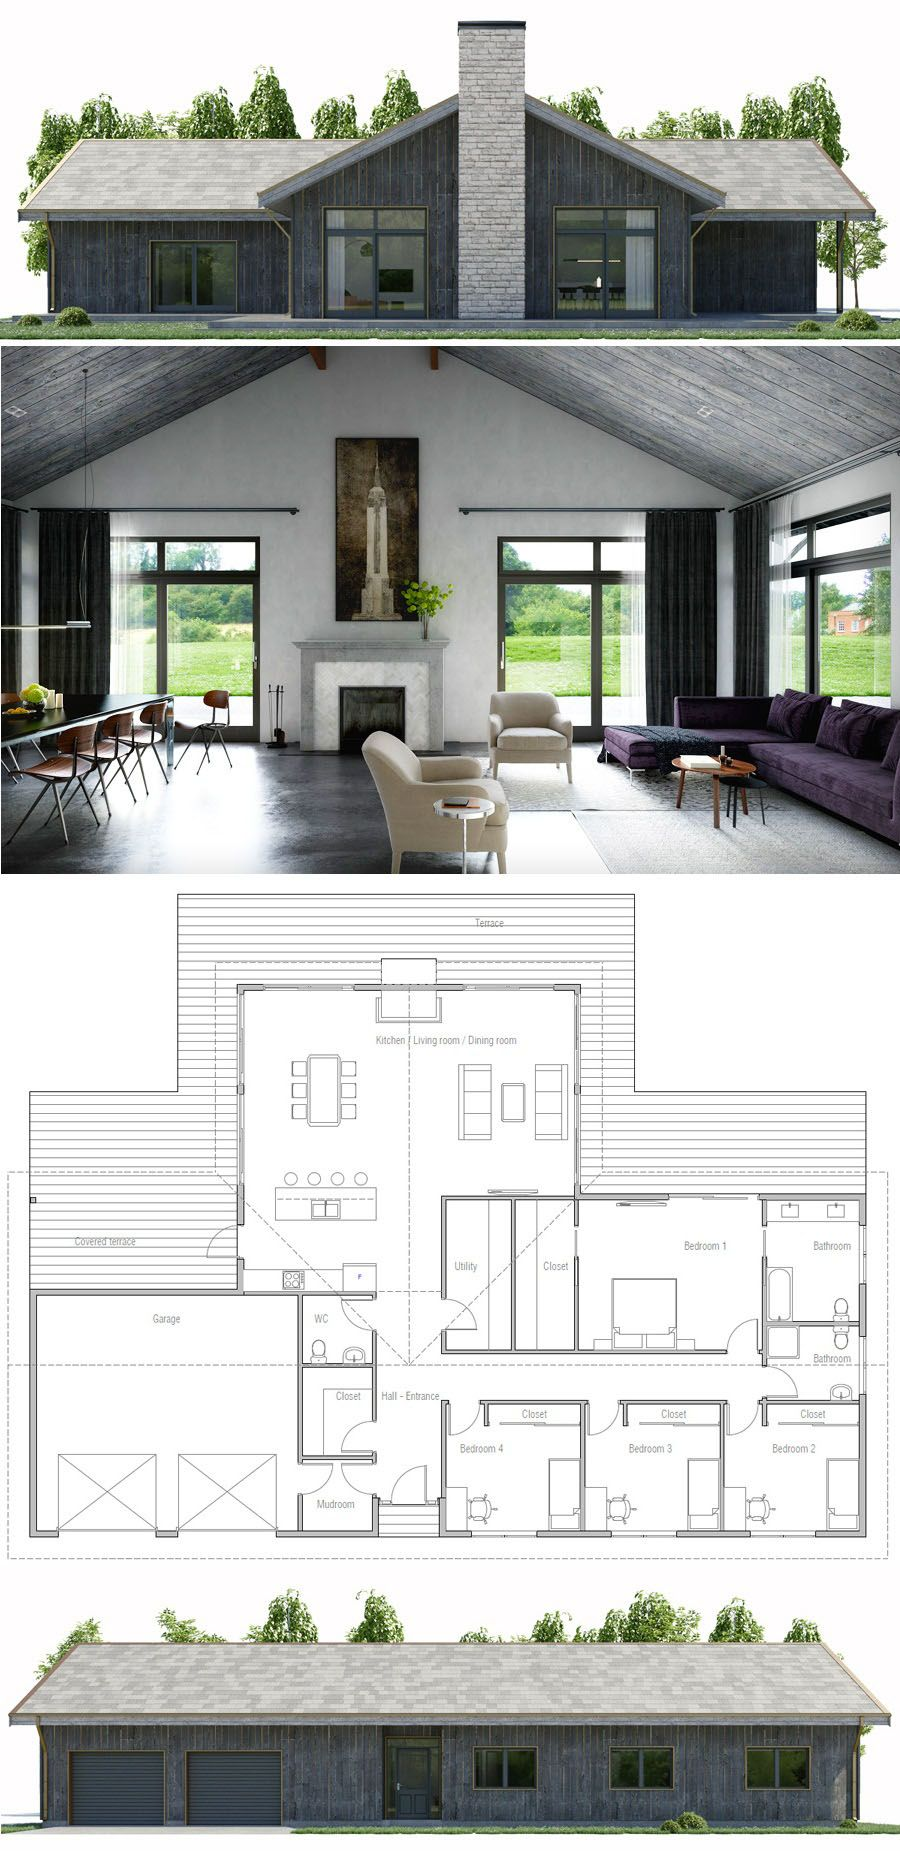 Moderne Hauspläne Large Luxury Country Home Modern House Plans Haus Pläne